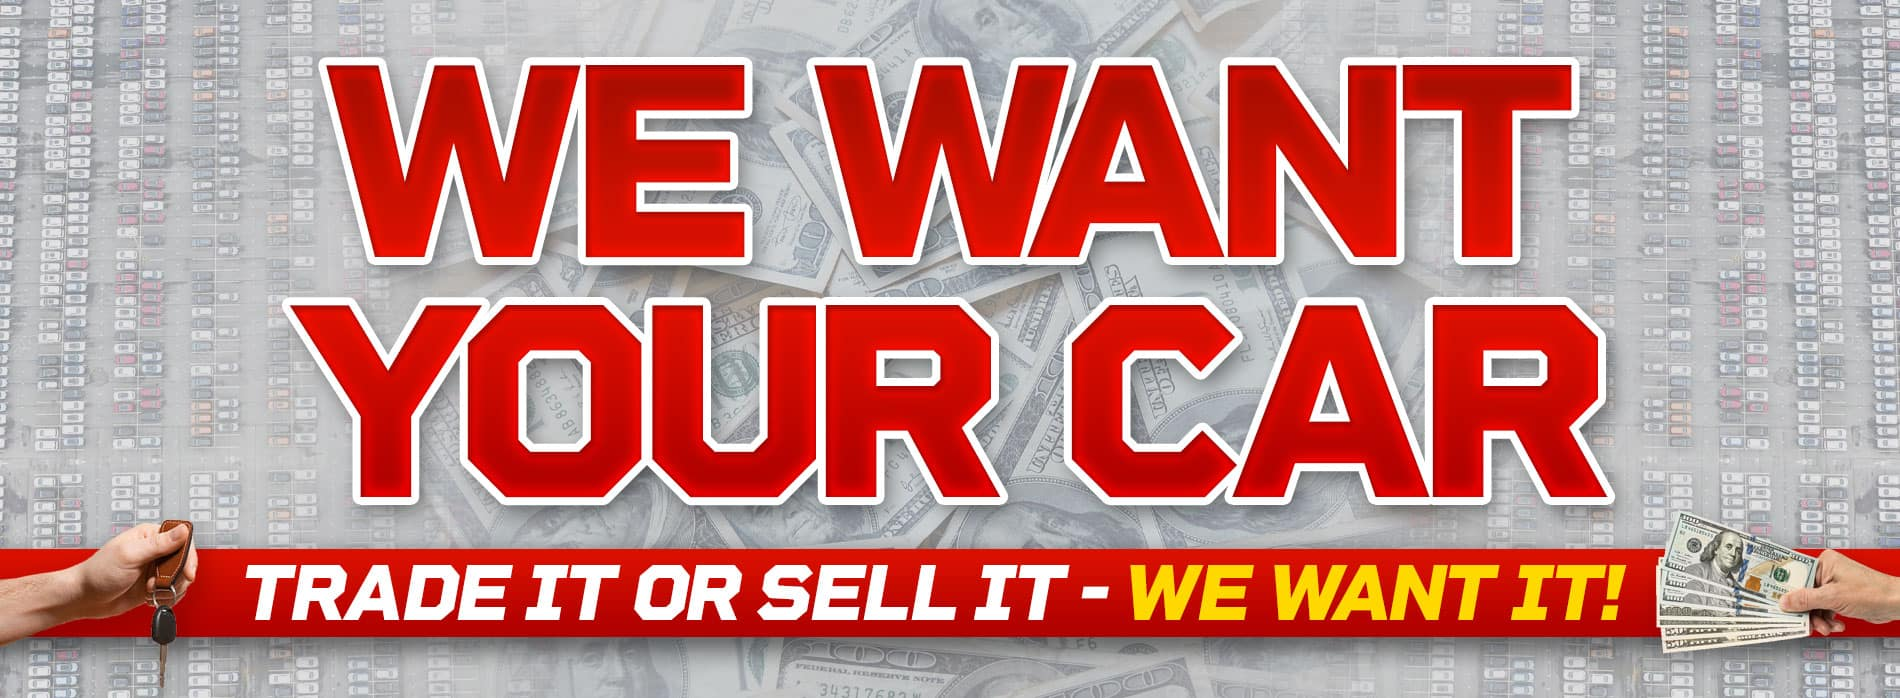 We want your car at Courtesy Superstition Springs